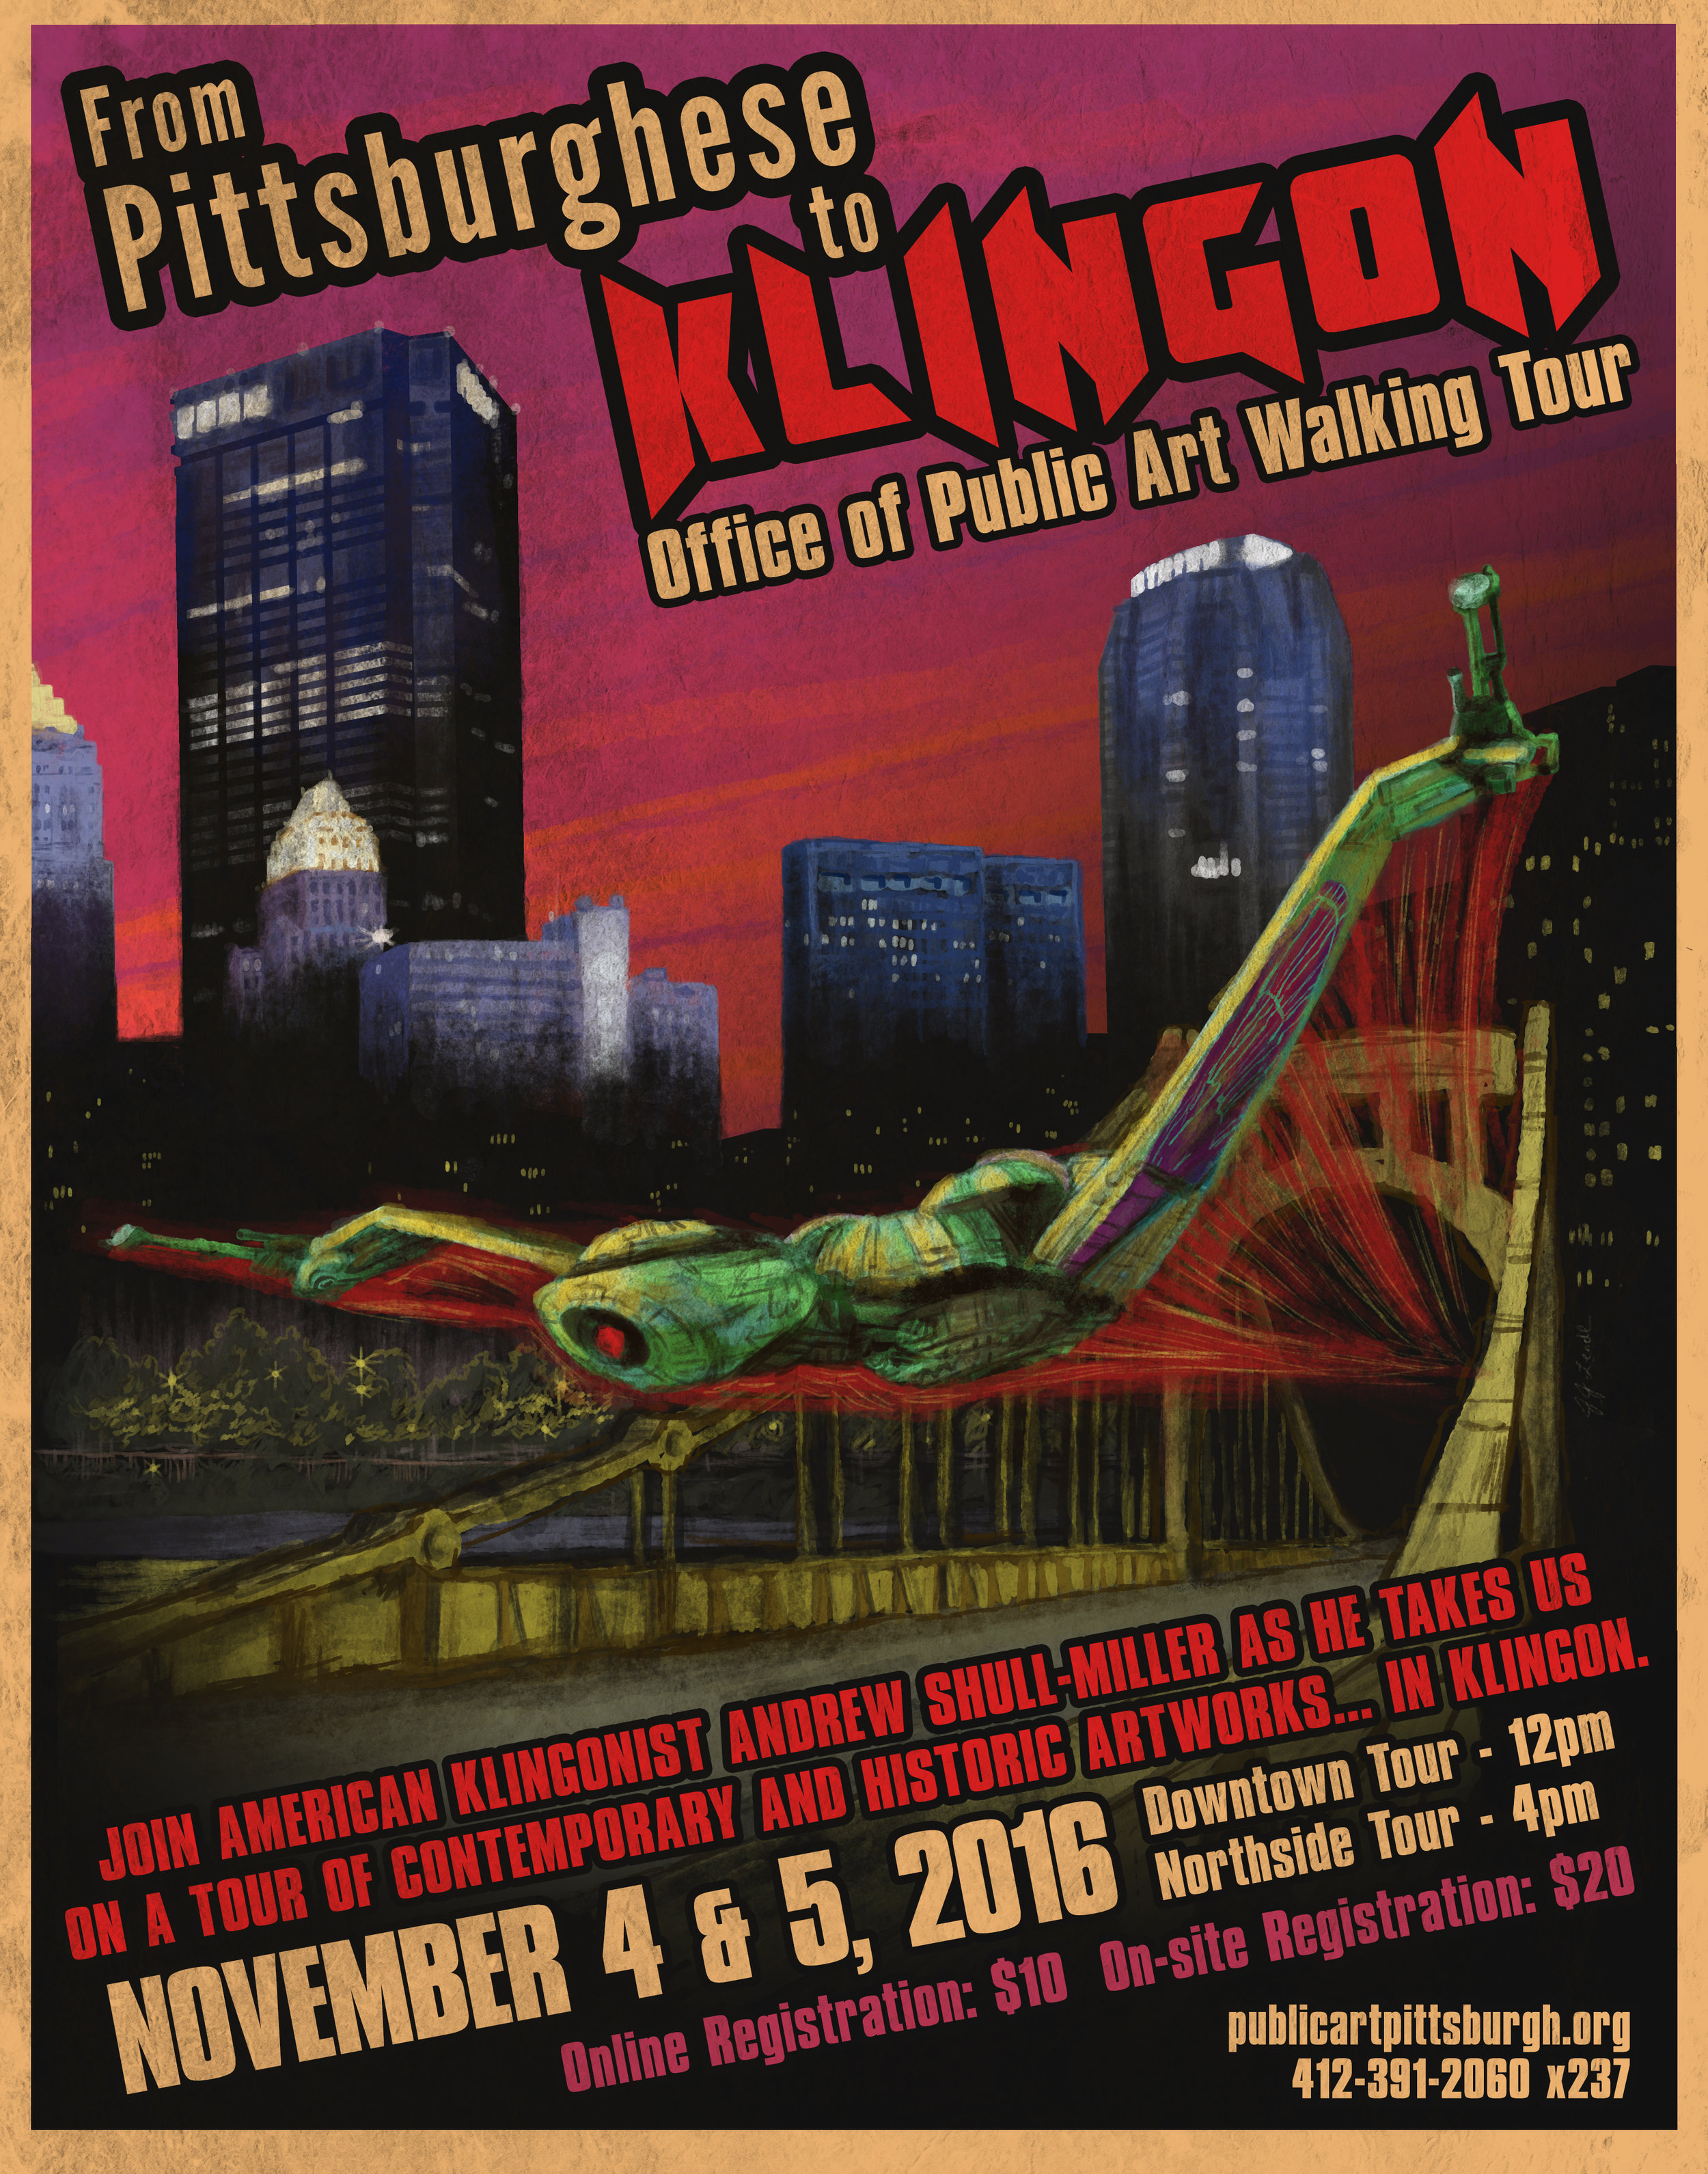 From Pittsburghese to Klingon Event Flyer